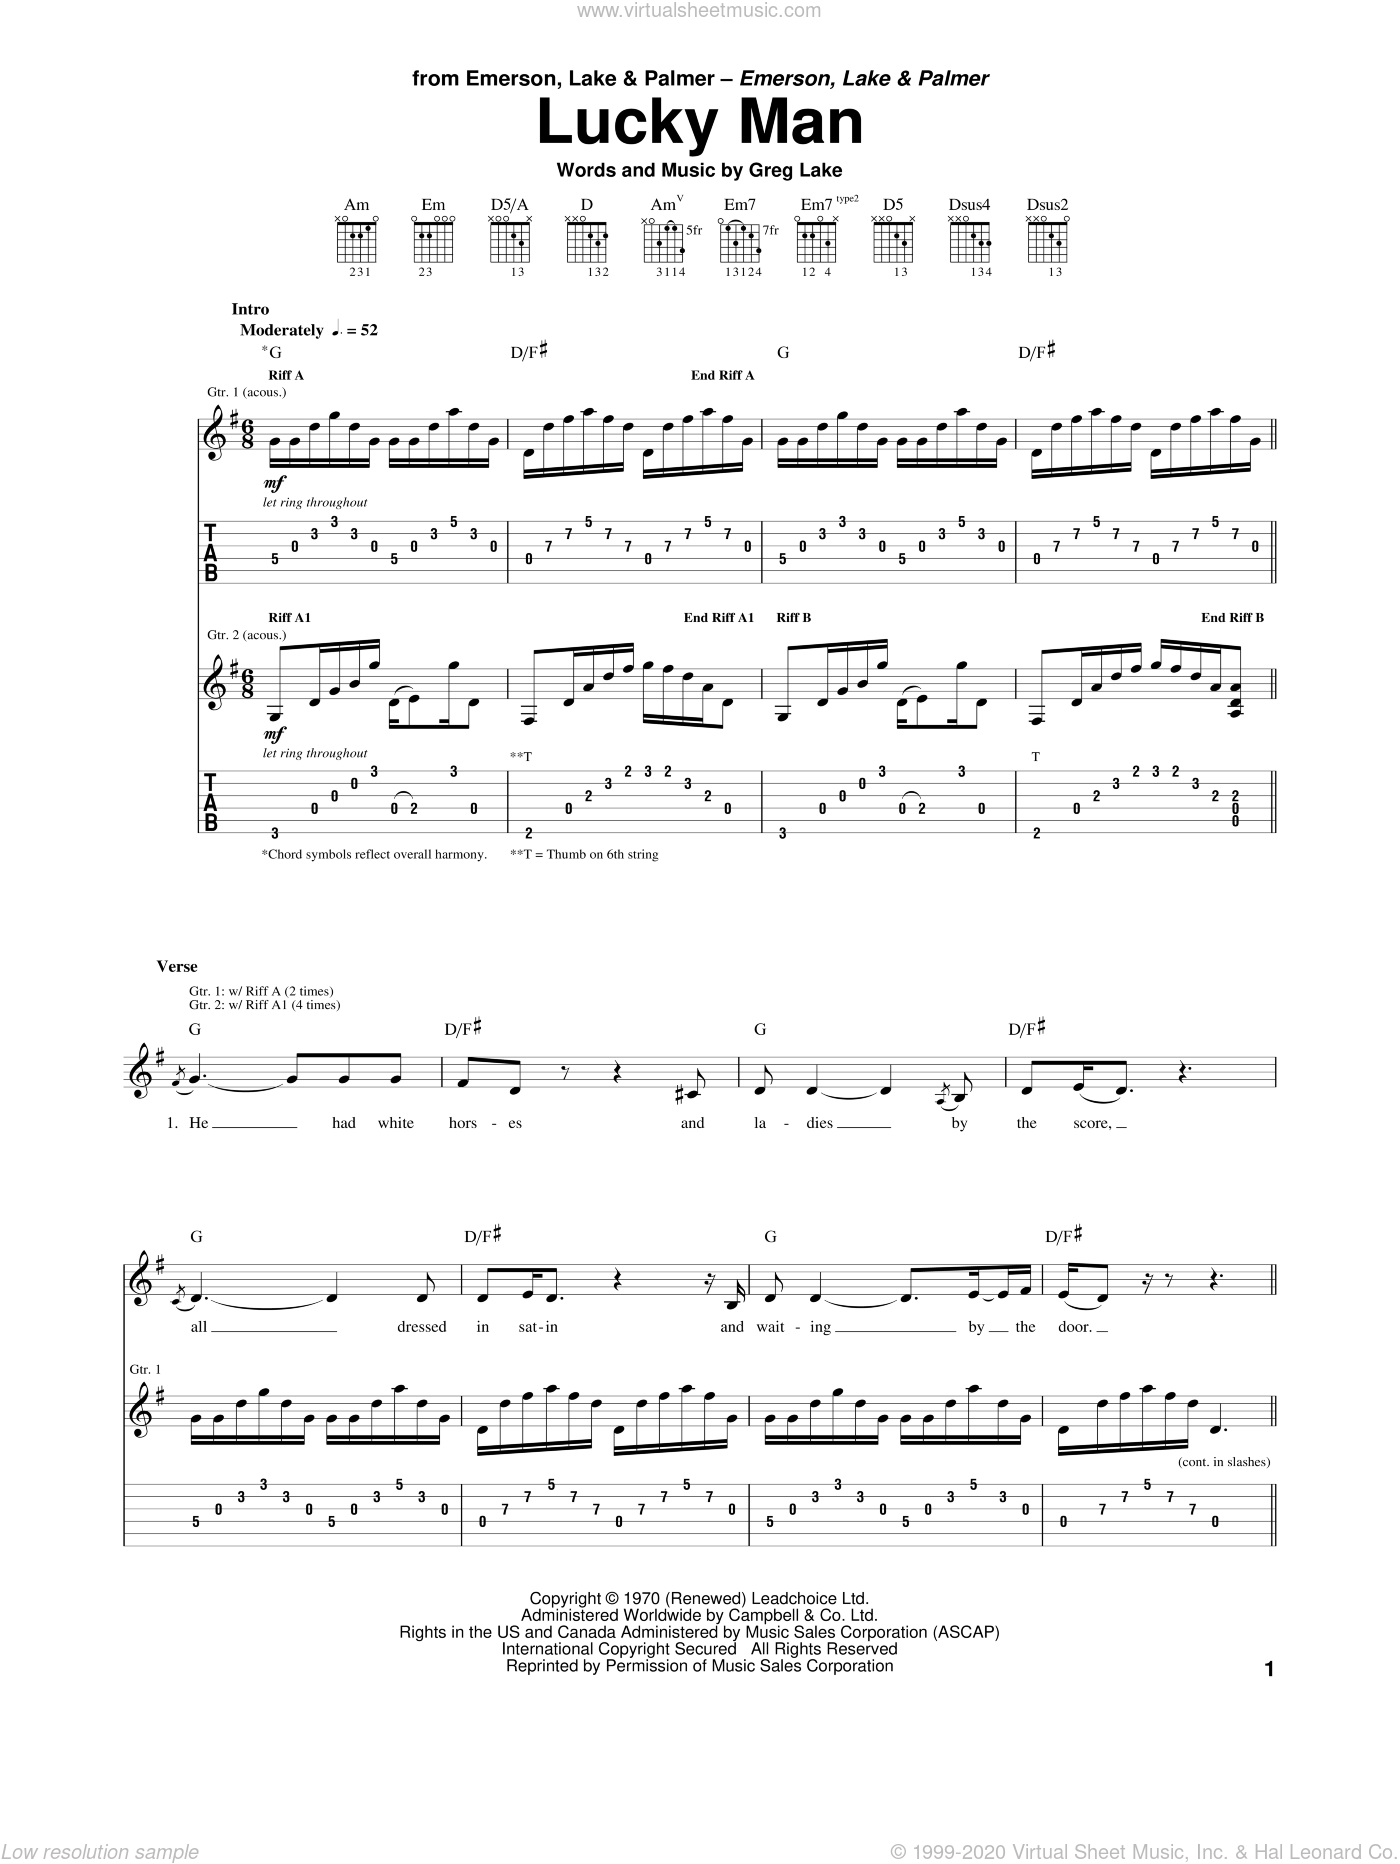 Lucky Man sheet music for guitar (tablature) by Emerson, Lake & Palmer and Greg Lake, intermediate